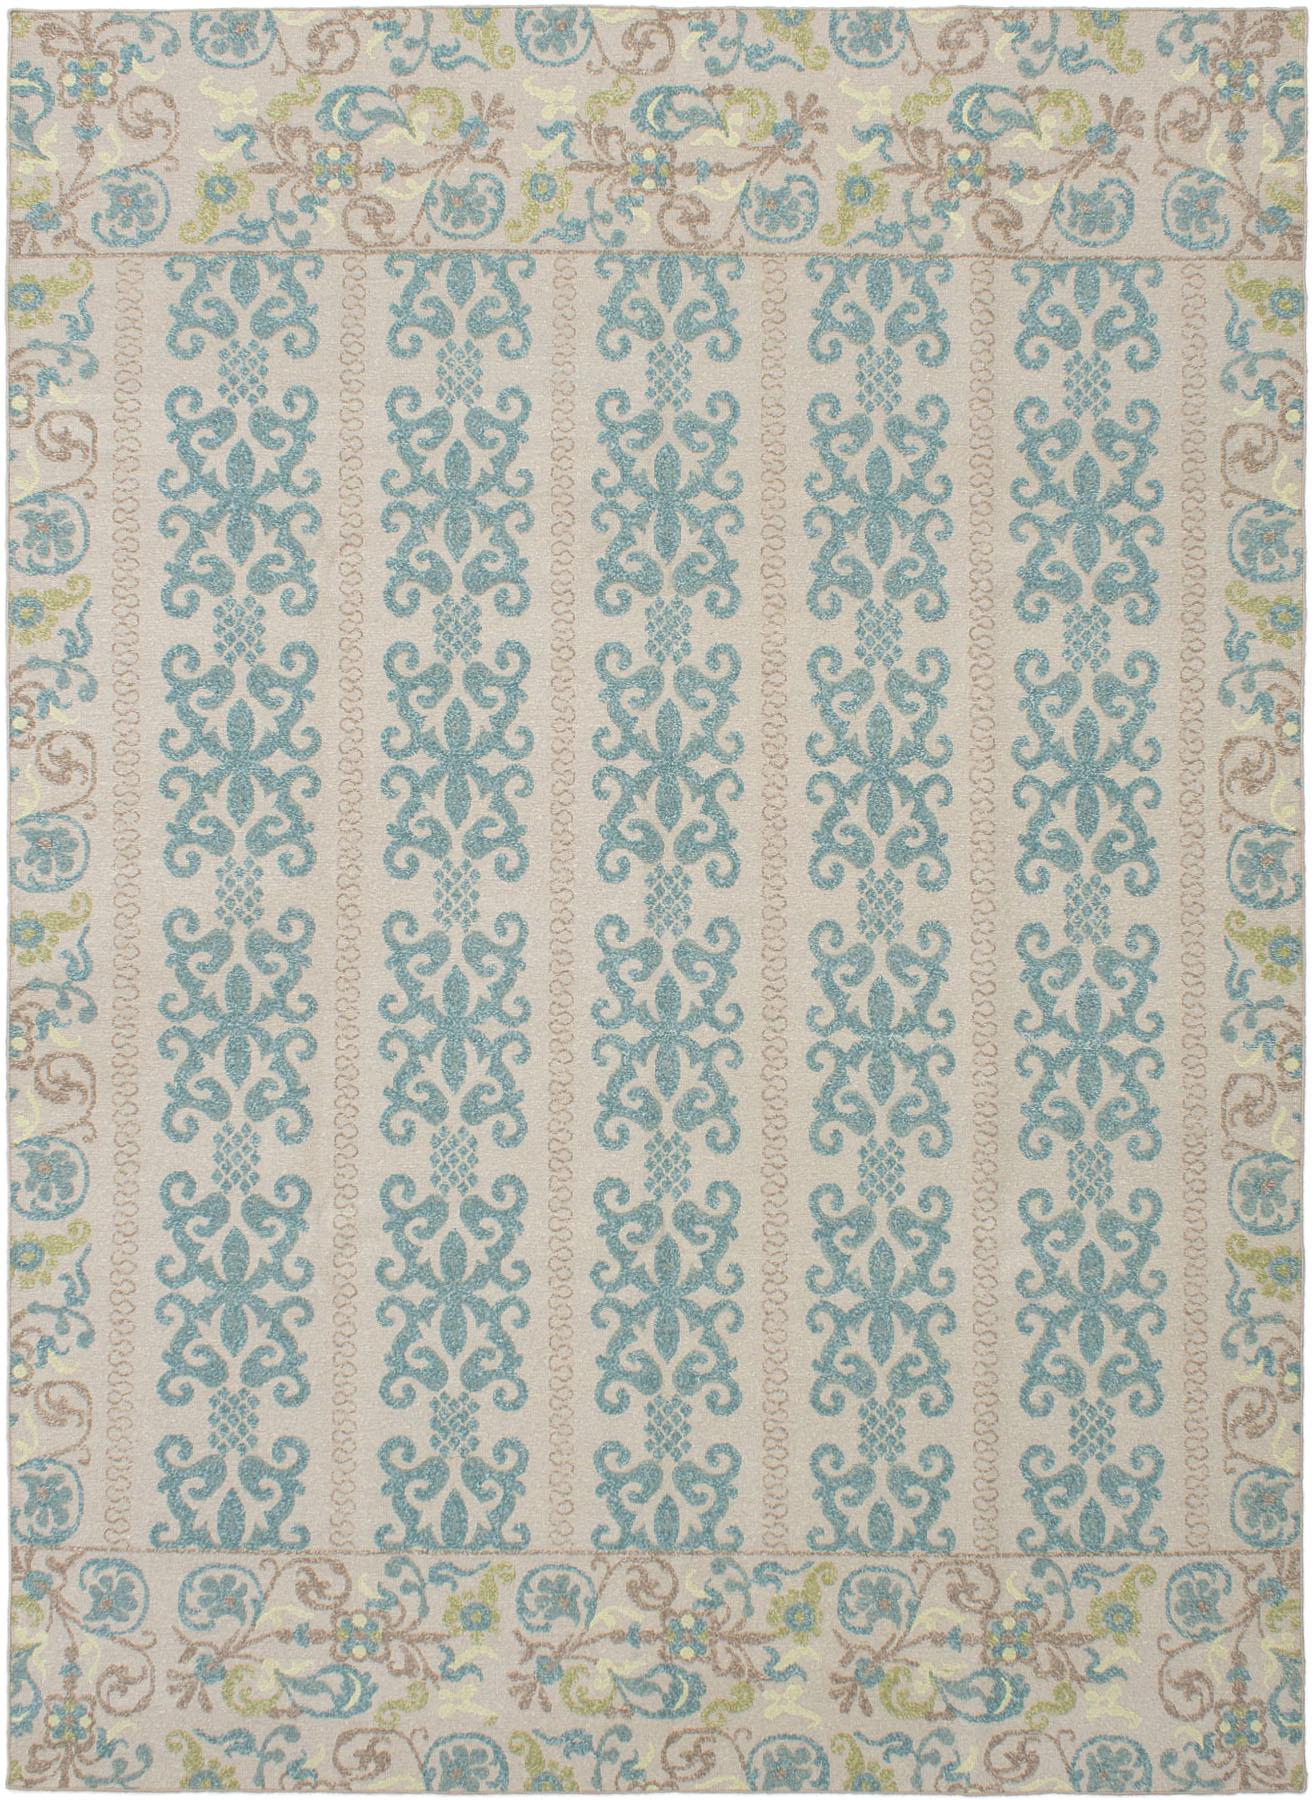 """Hand woven Tamar I Teal Wool Tapestry Kilim 8'6"""" x 11'6"""" Size: 8'6"""" x 11'6"""""""